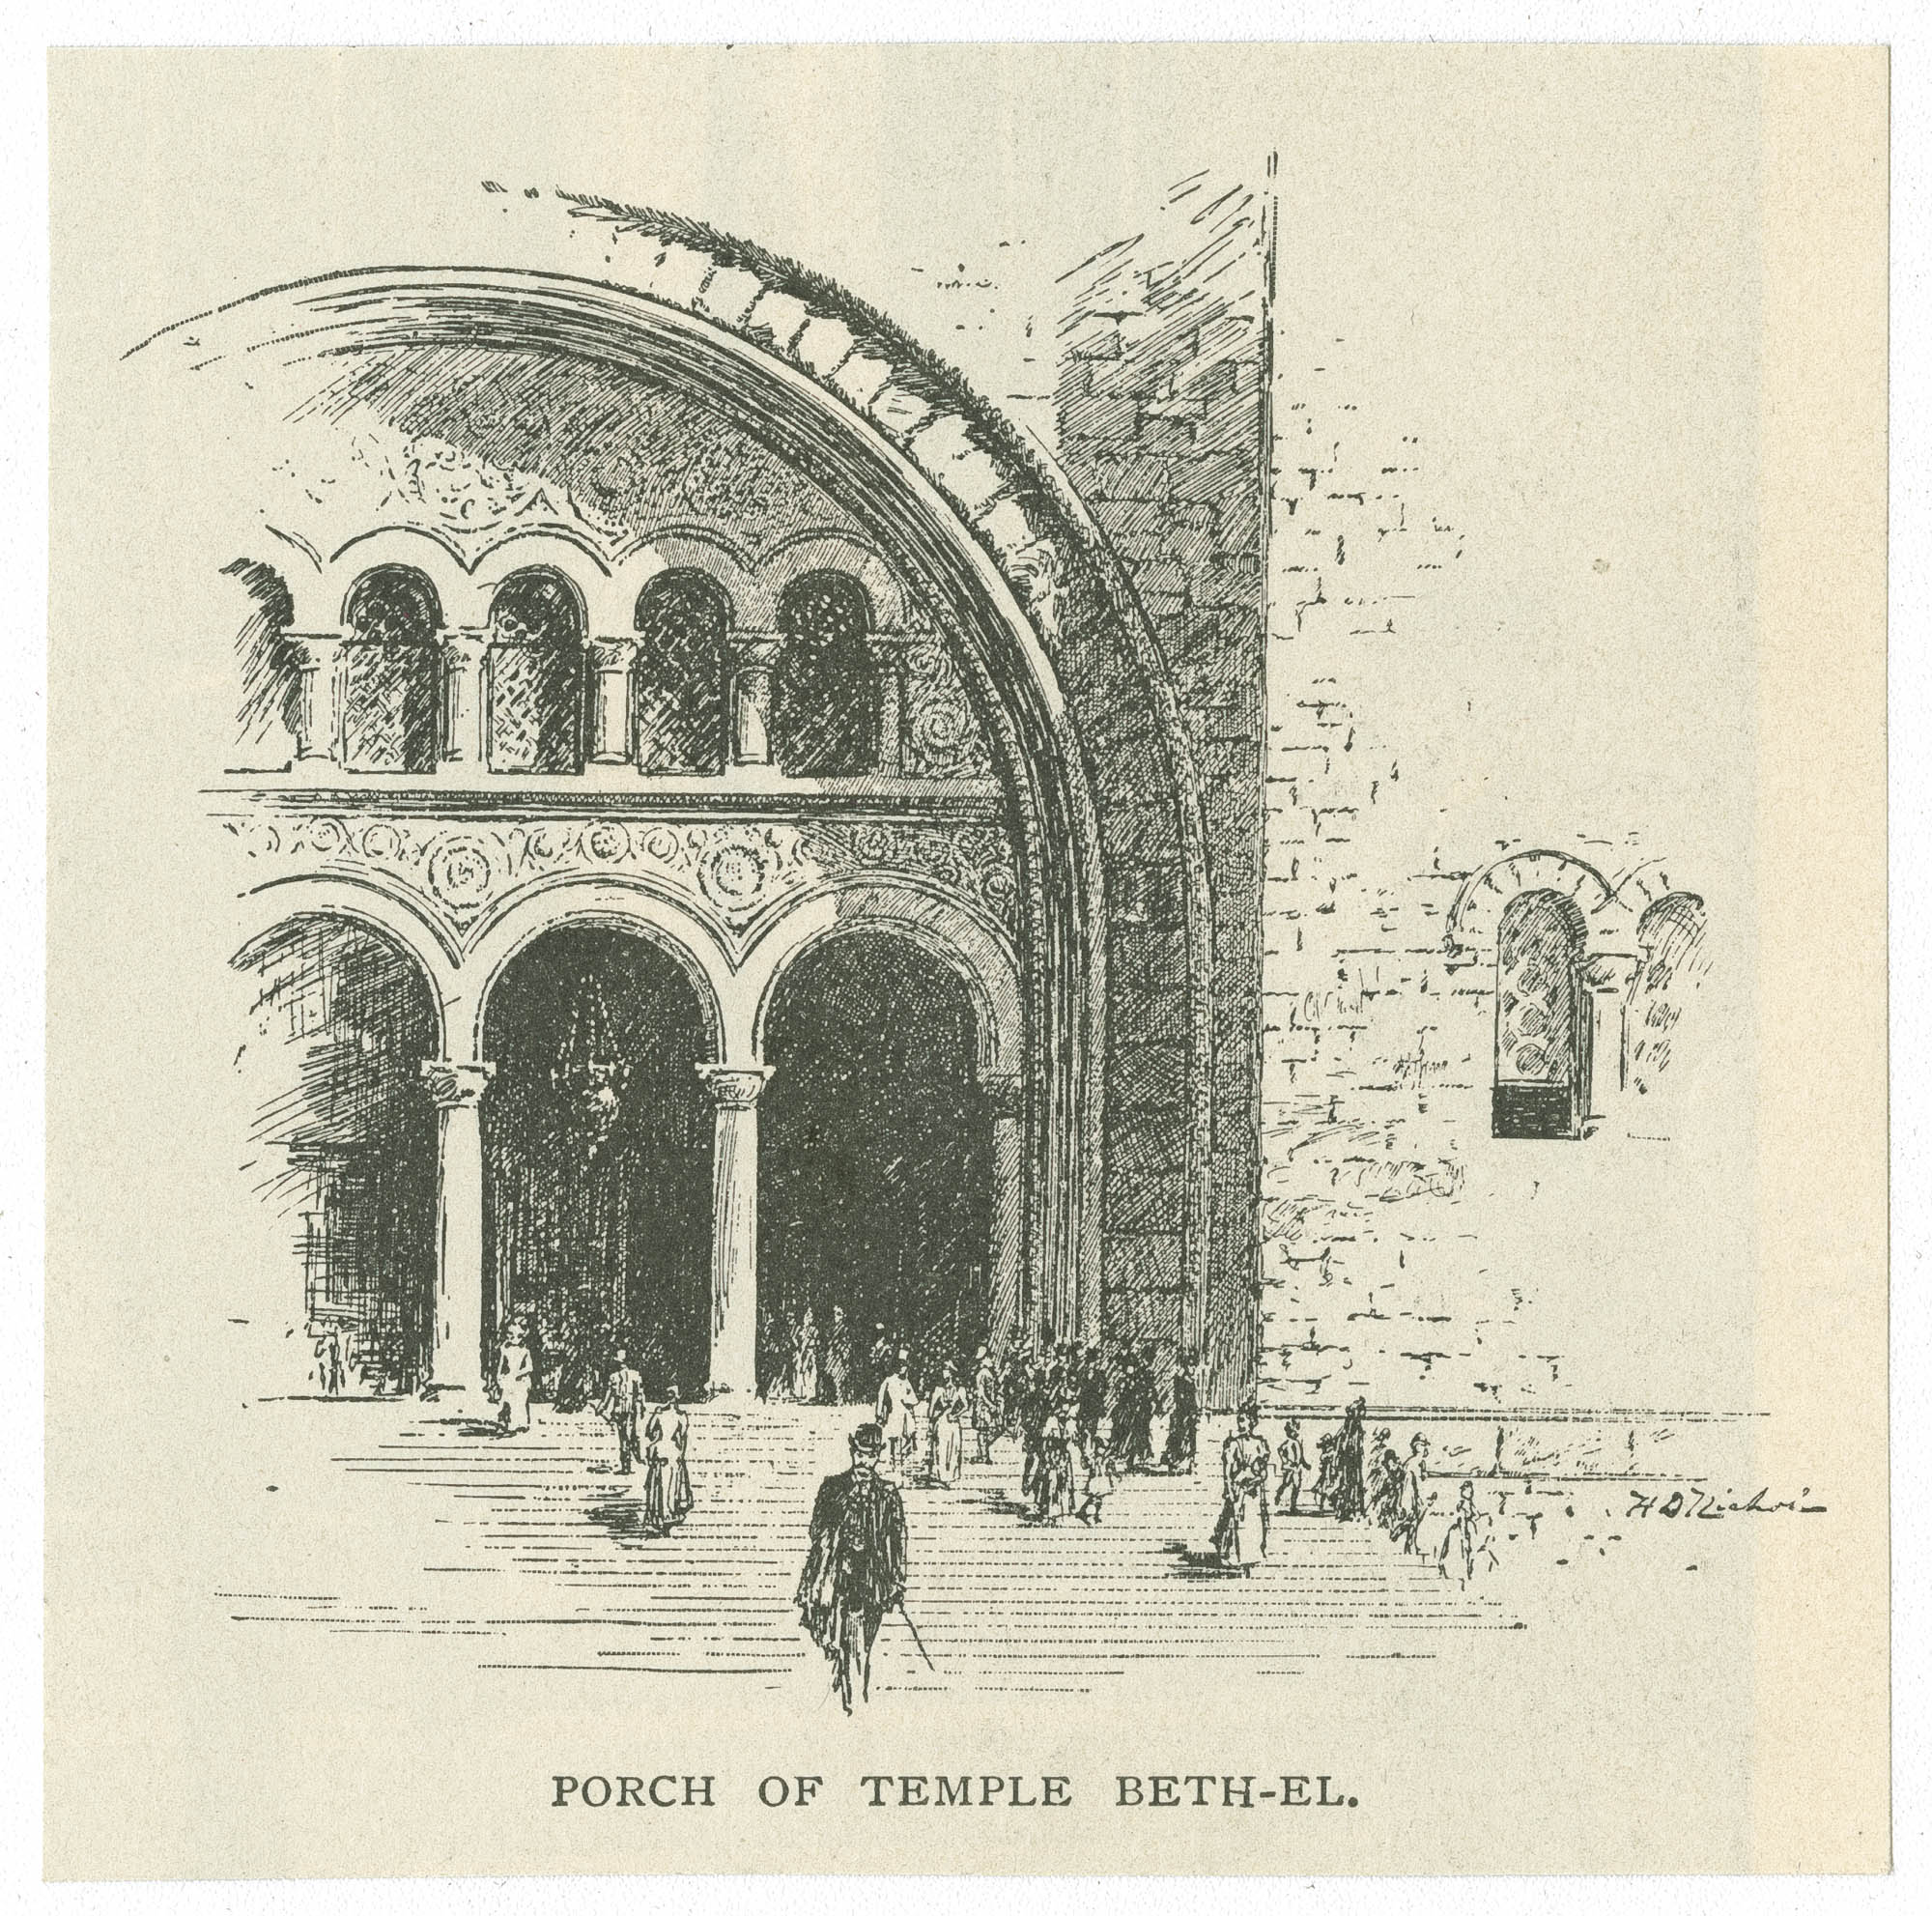 Porch of Temple Beth-El